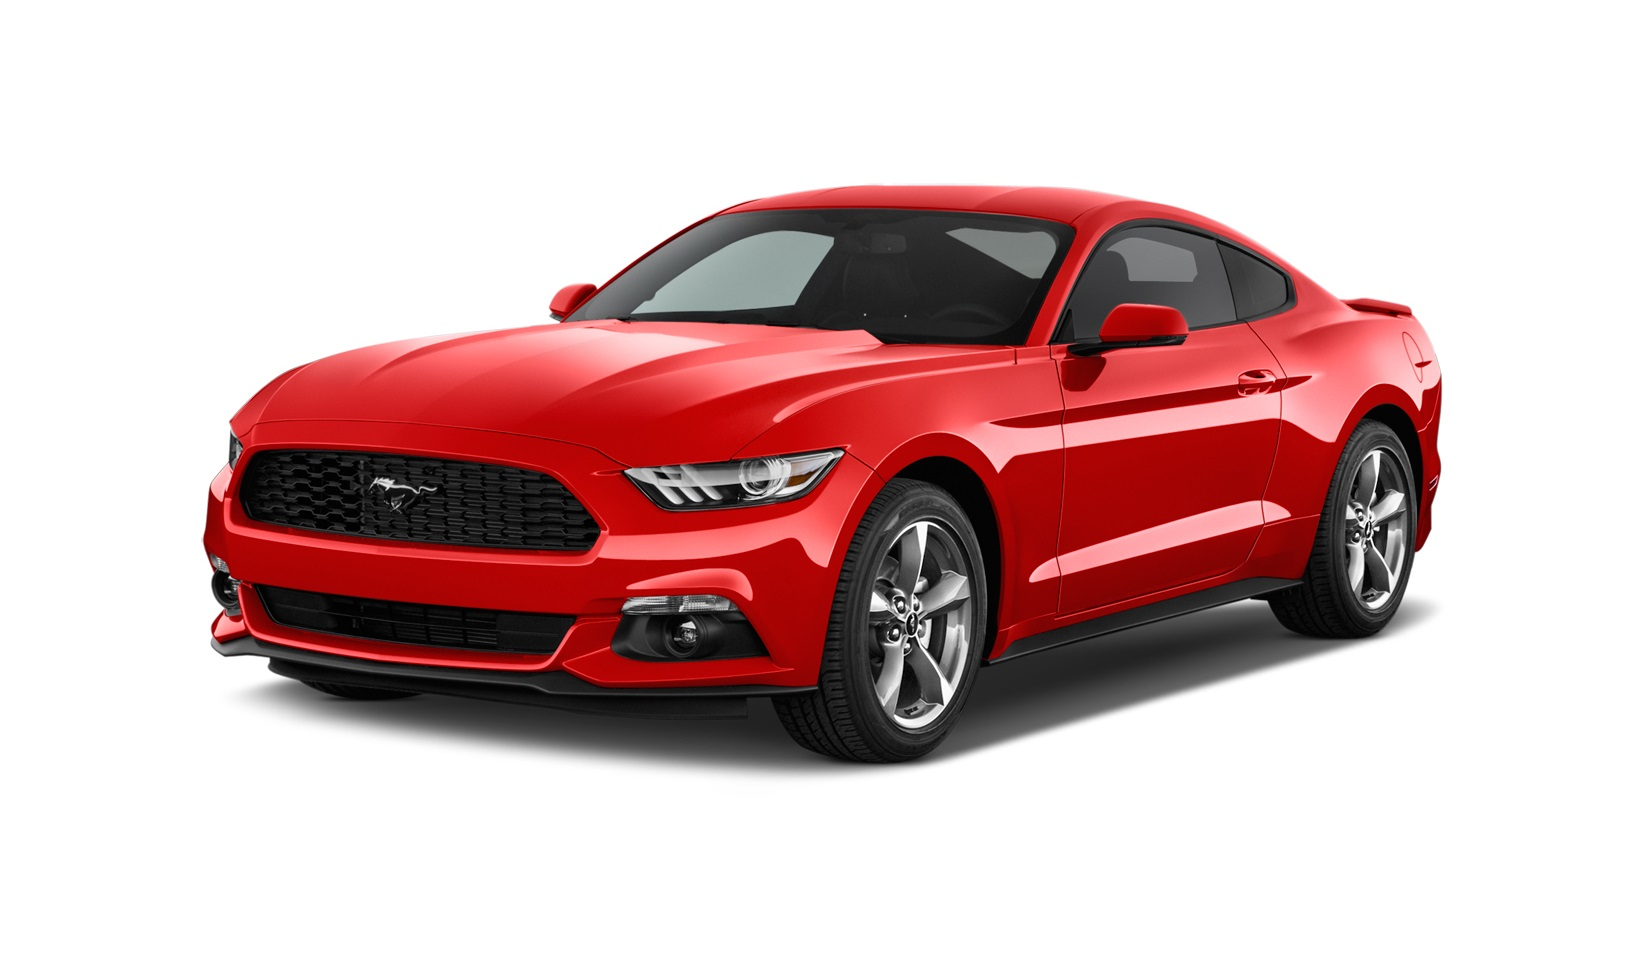 Ford mustang price in uae new ford mustang photos and specs yallamotor